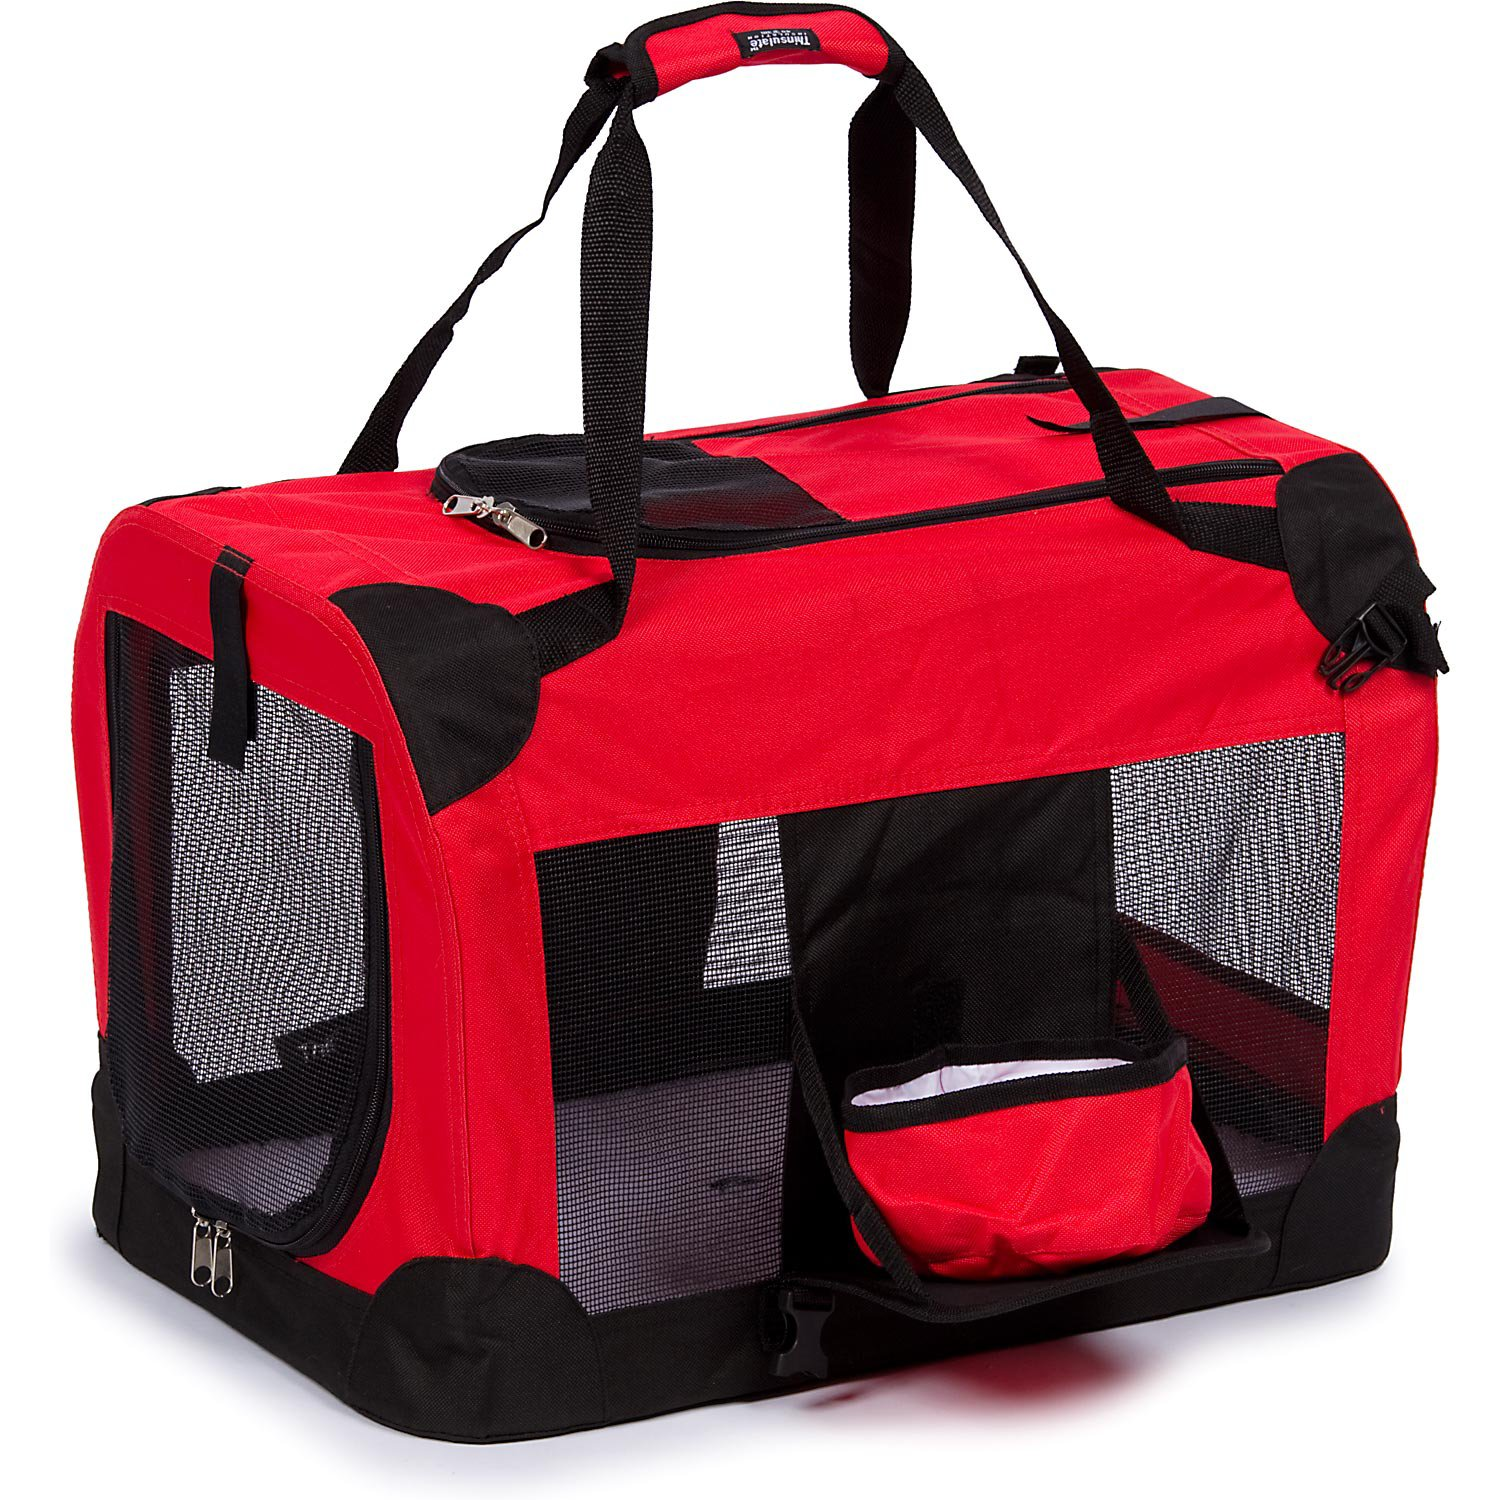 """Pet Life Folding Deluxe 360 Vista View House Carrier In Red, 23"""" L X 16"""" W X 16"""" H, Small"""